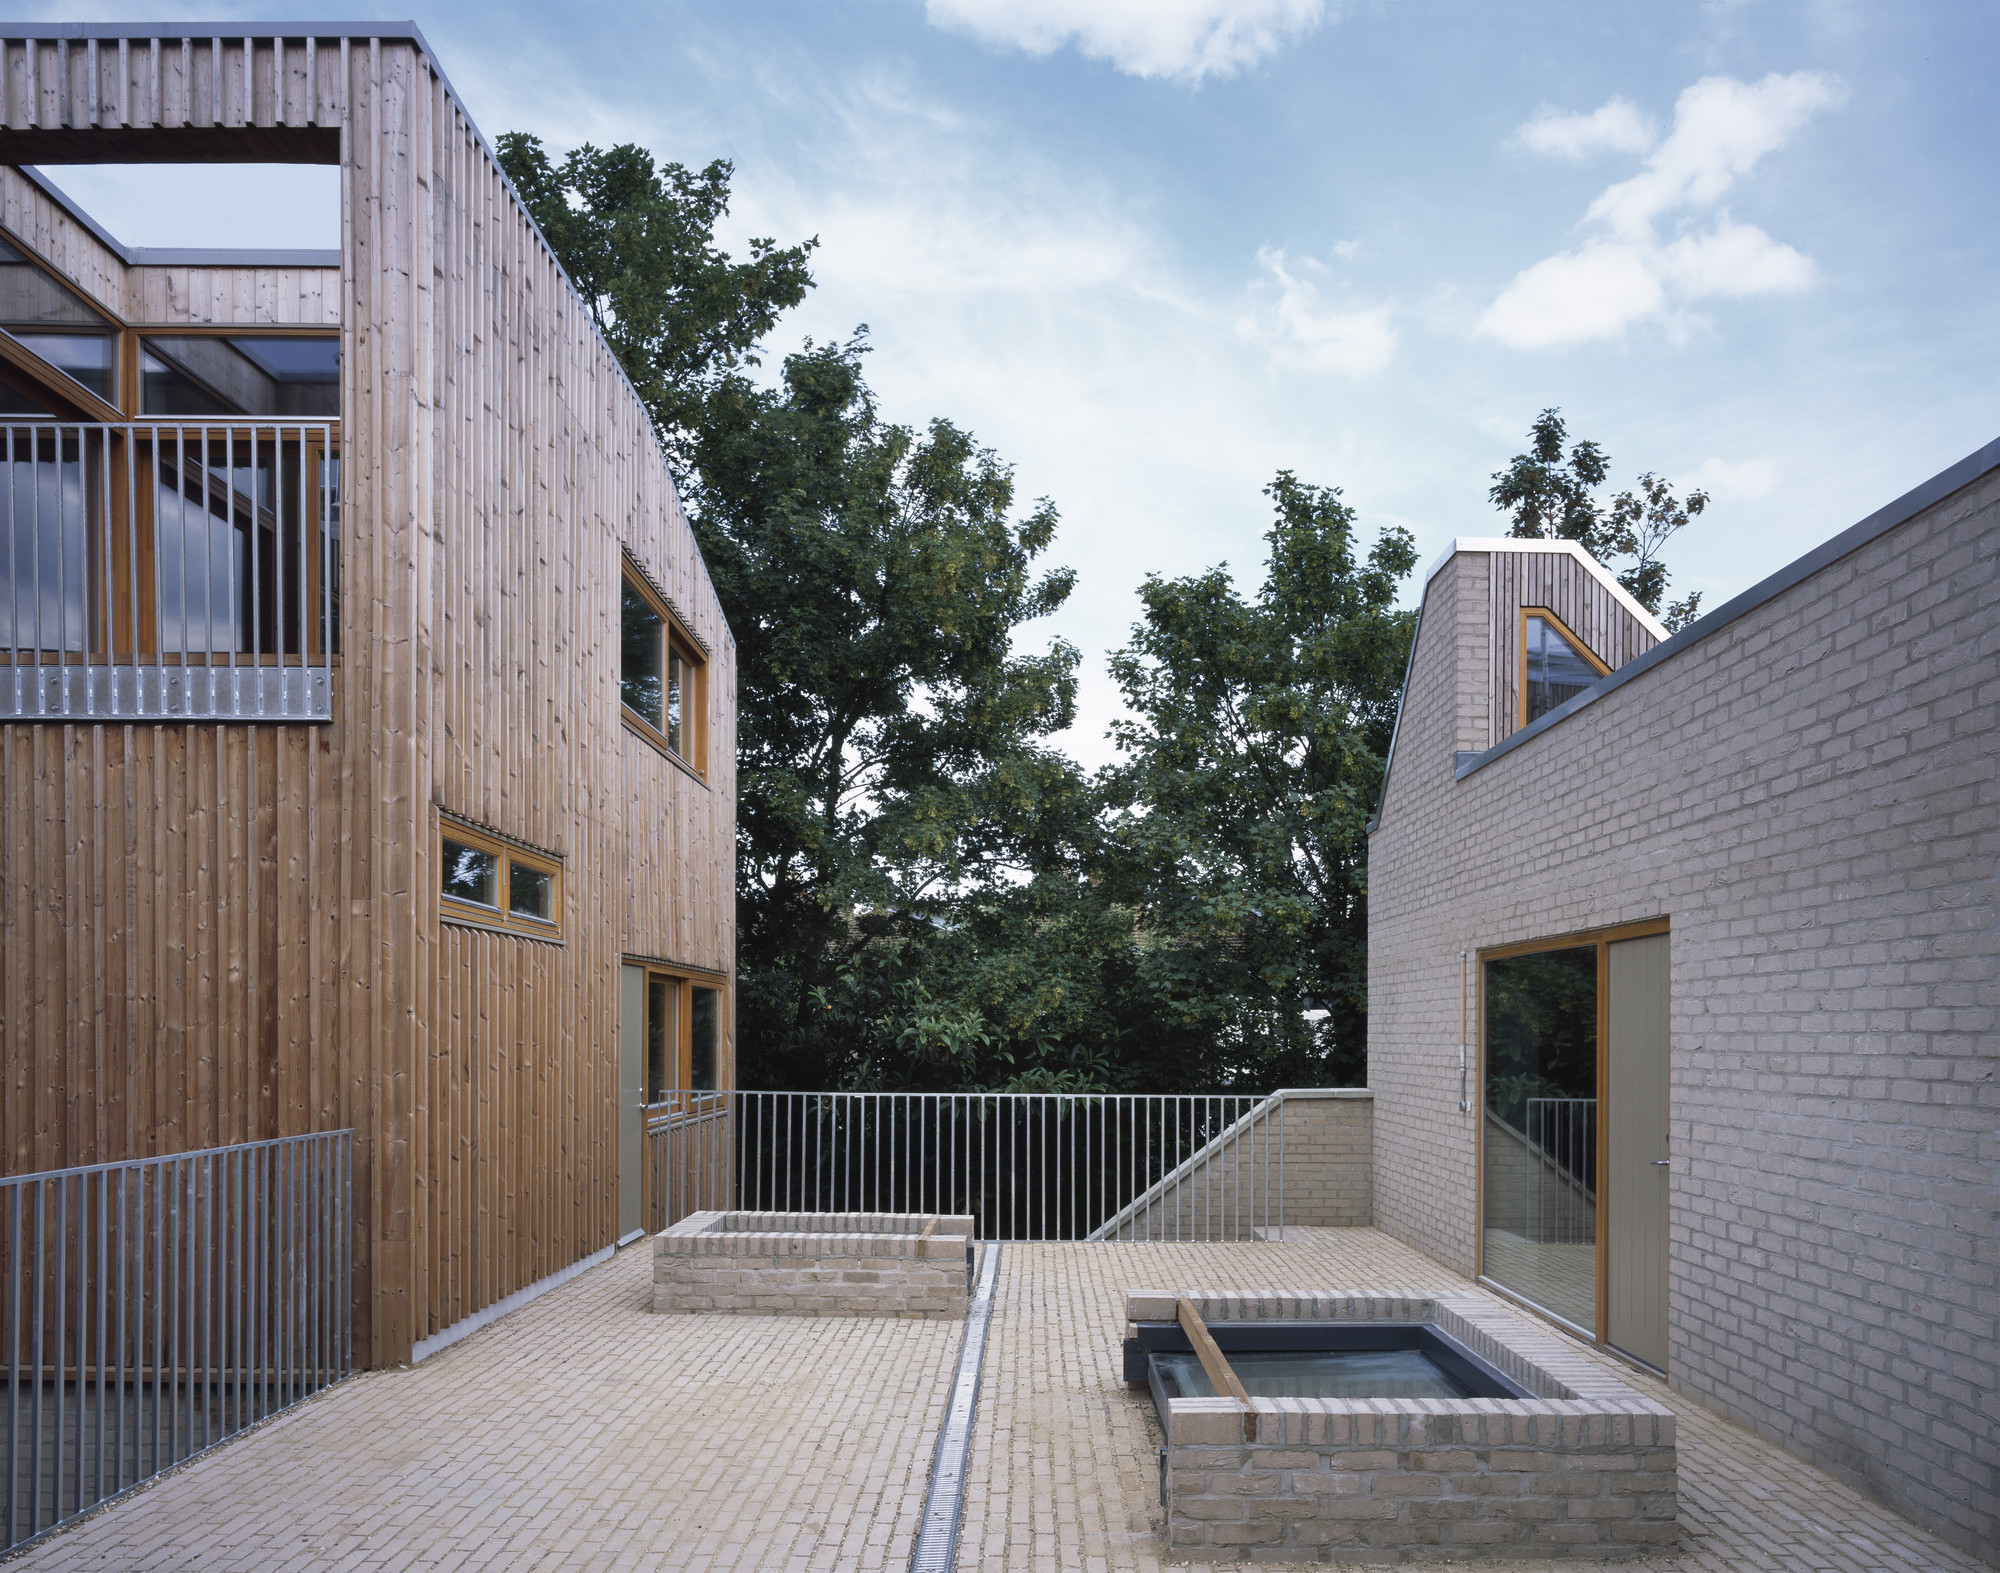 1–6 Copper Lane N16 9NS / Henley Halebrown Rorrison Architects, © Ioana Marinescu